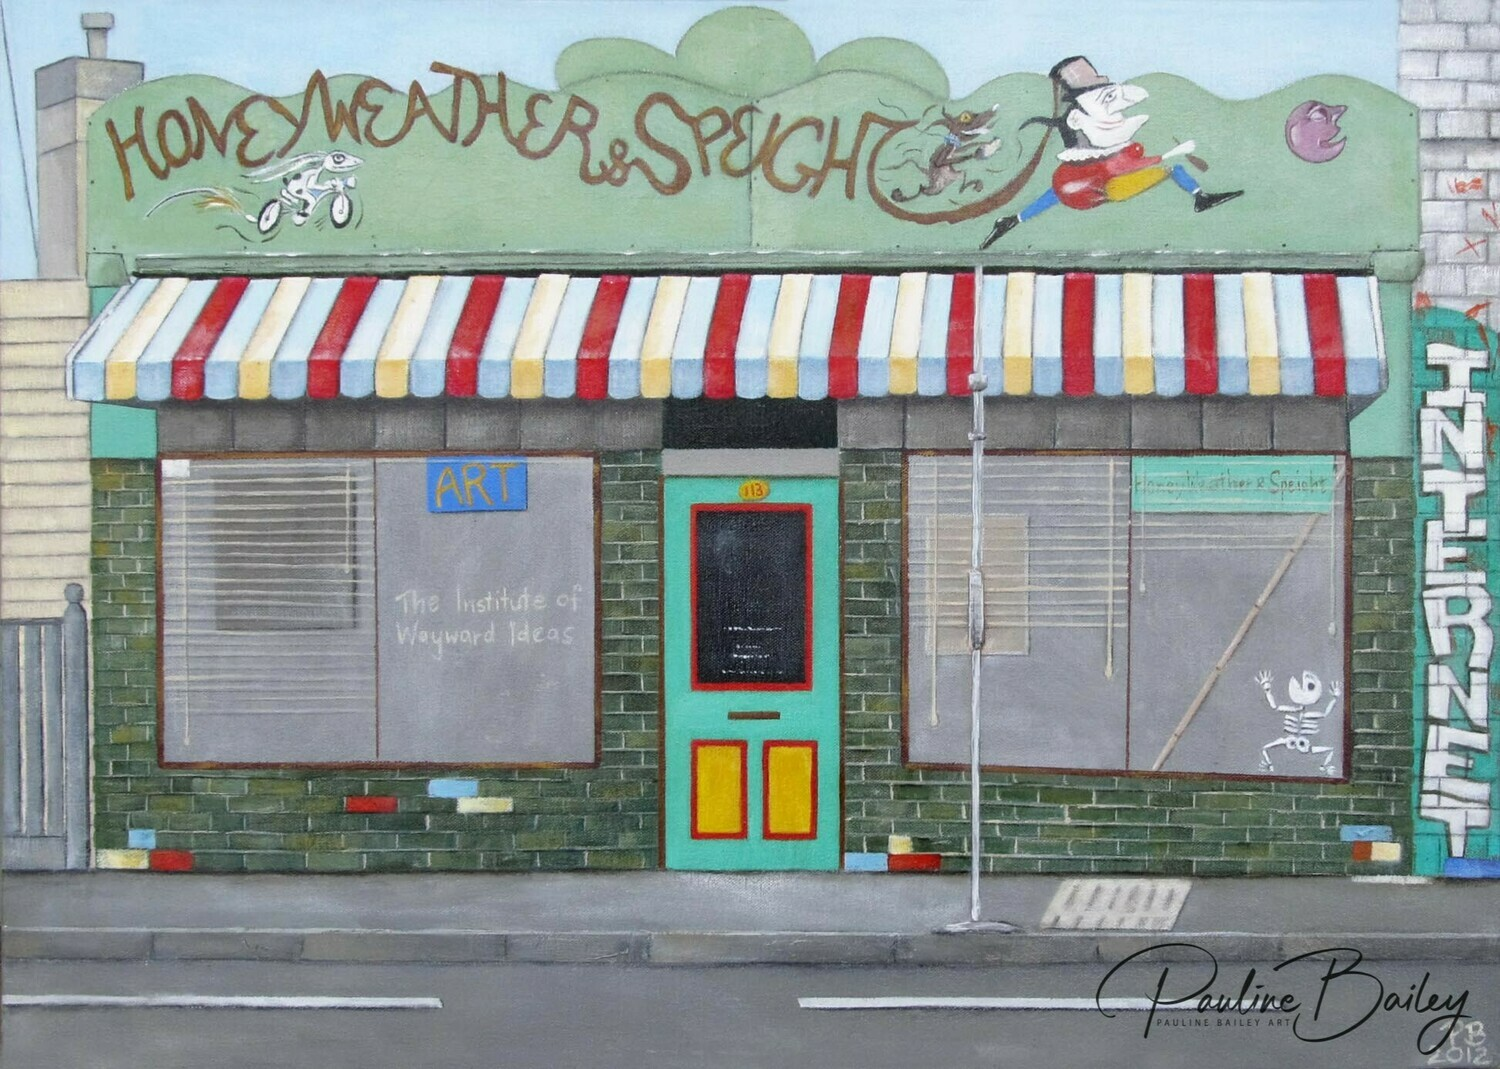 Original painting - Honey, Weather & Speight, Barkly Street.